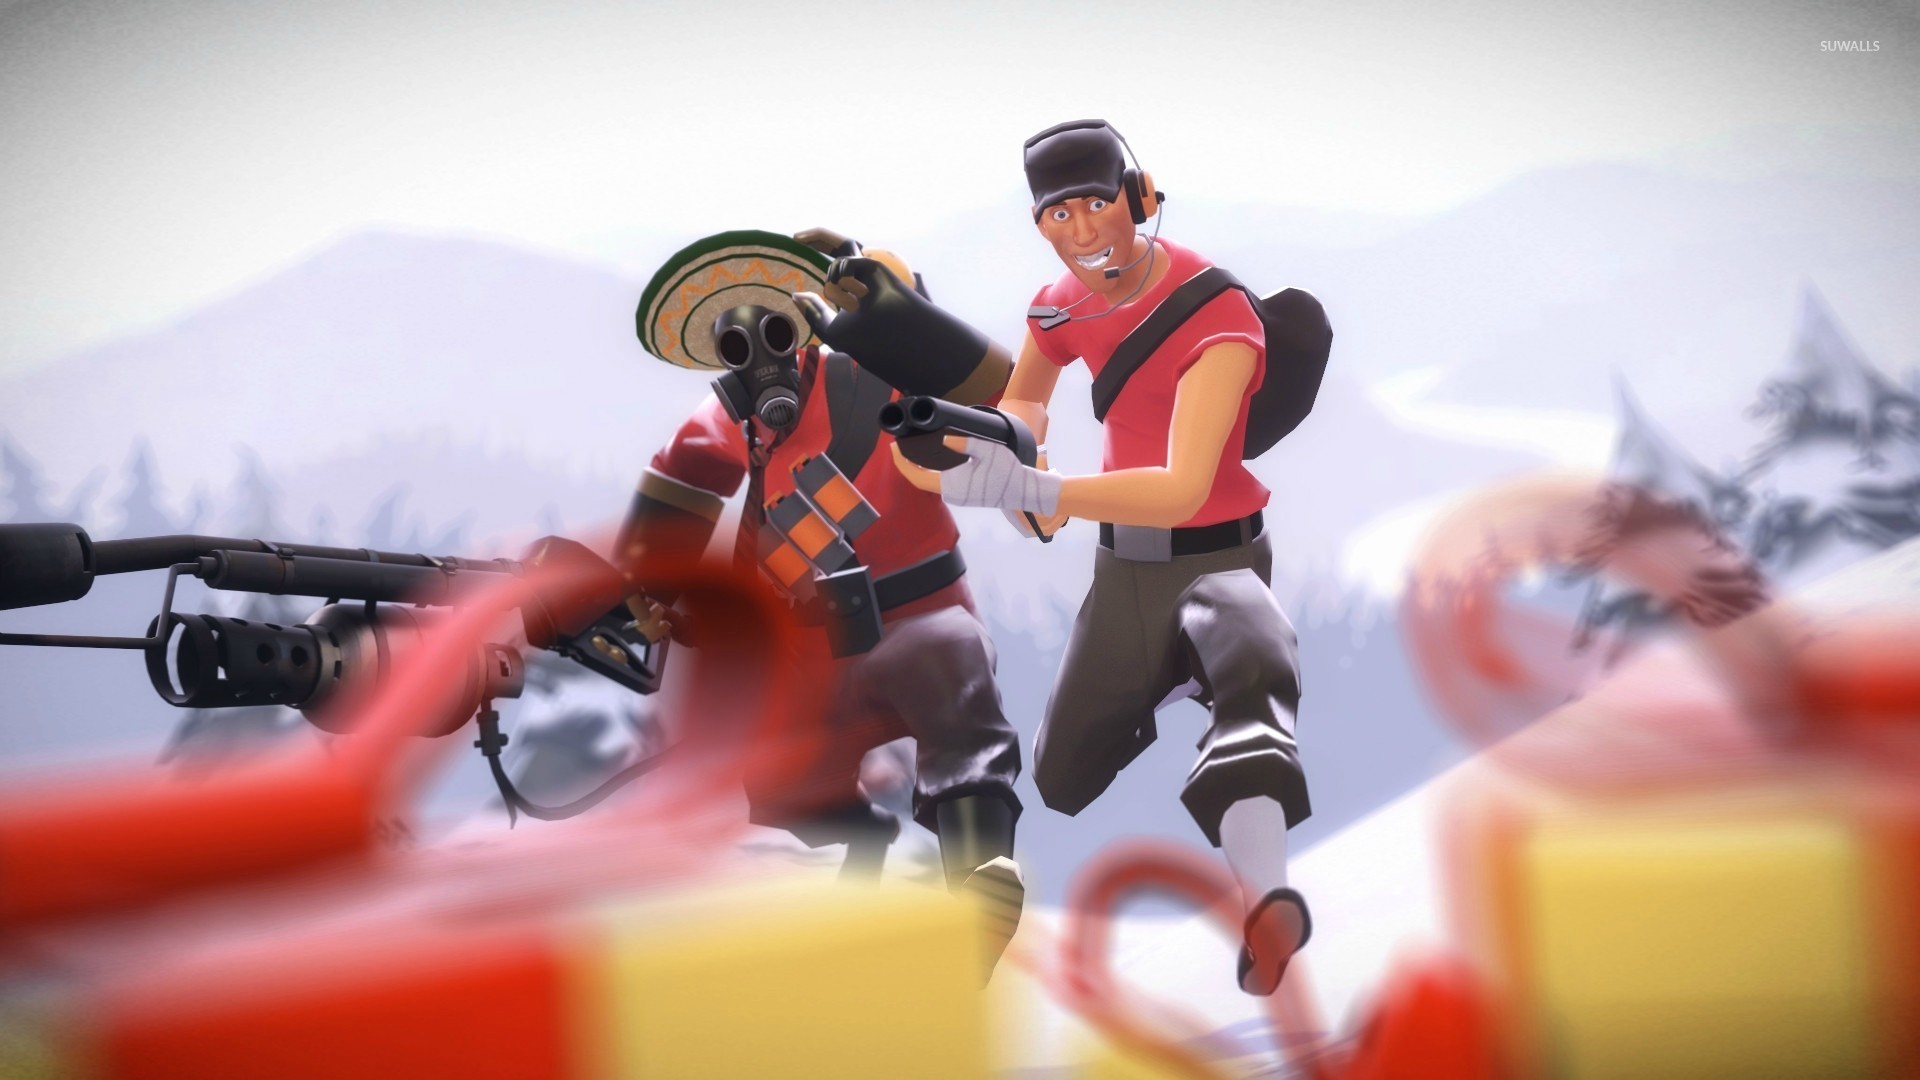 Pyro and Scout – Team Fortress 2 wallpaper